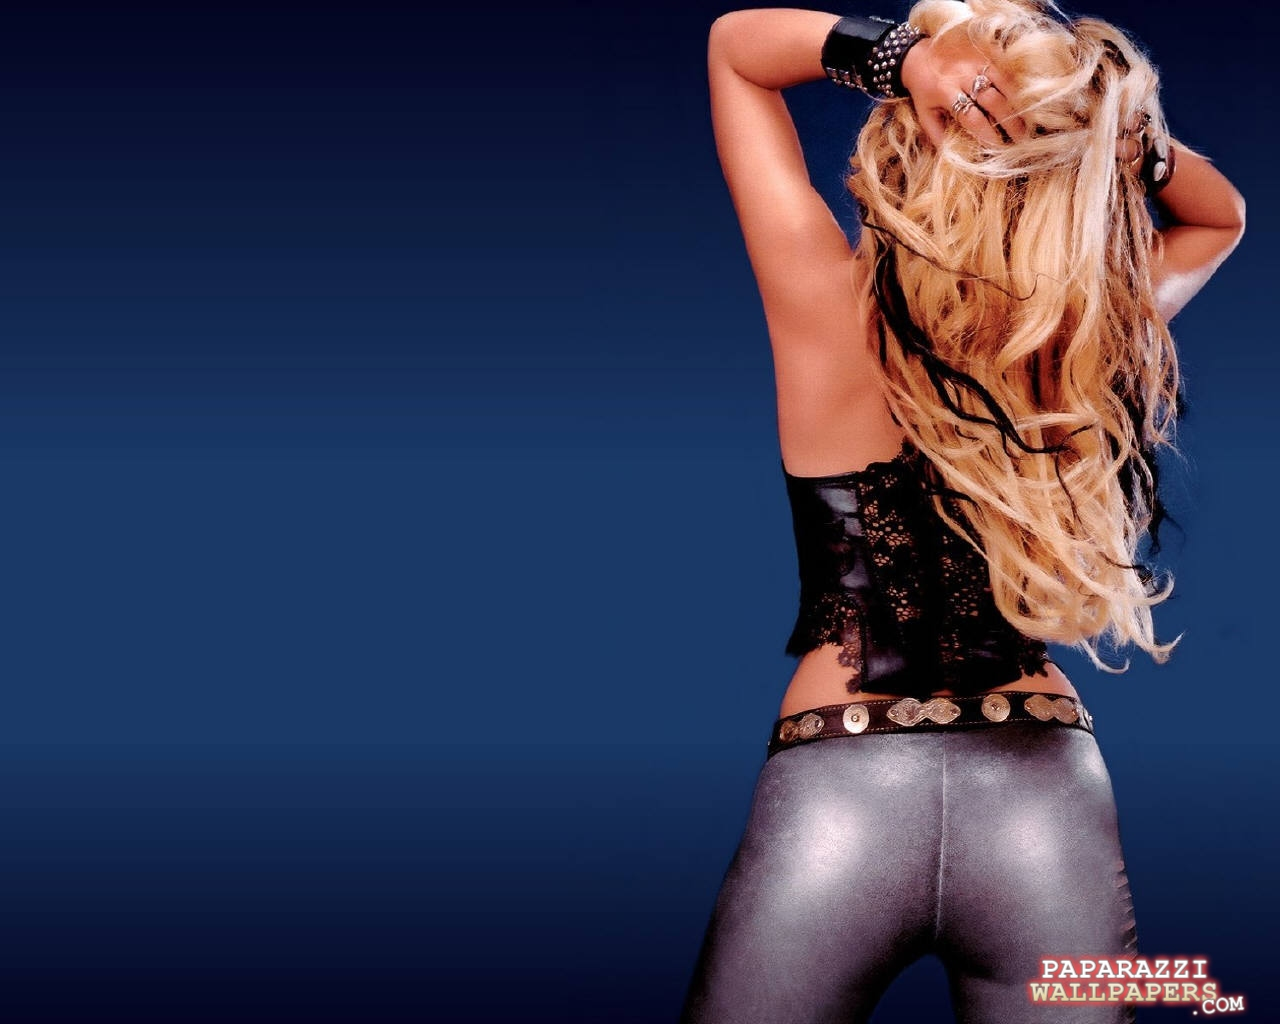 shakira wallpapers 033